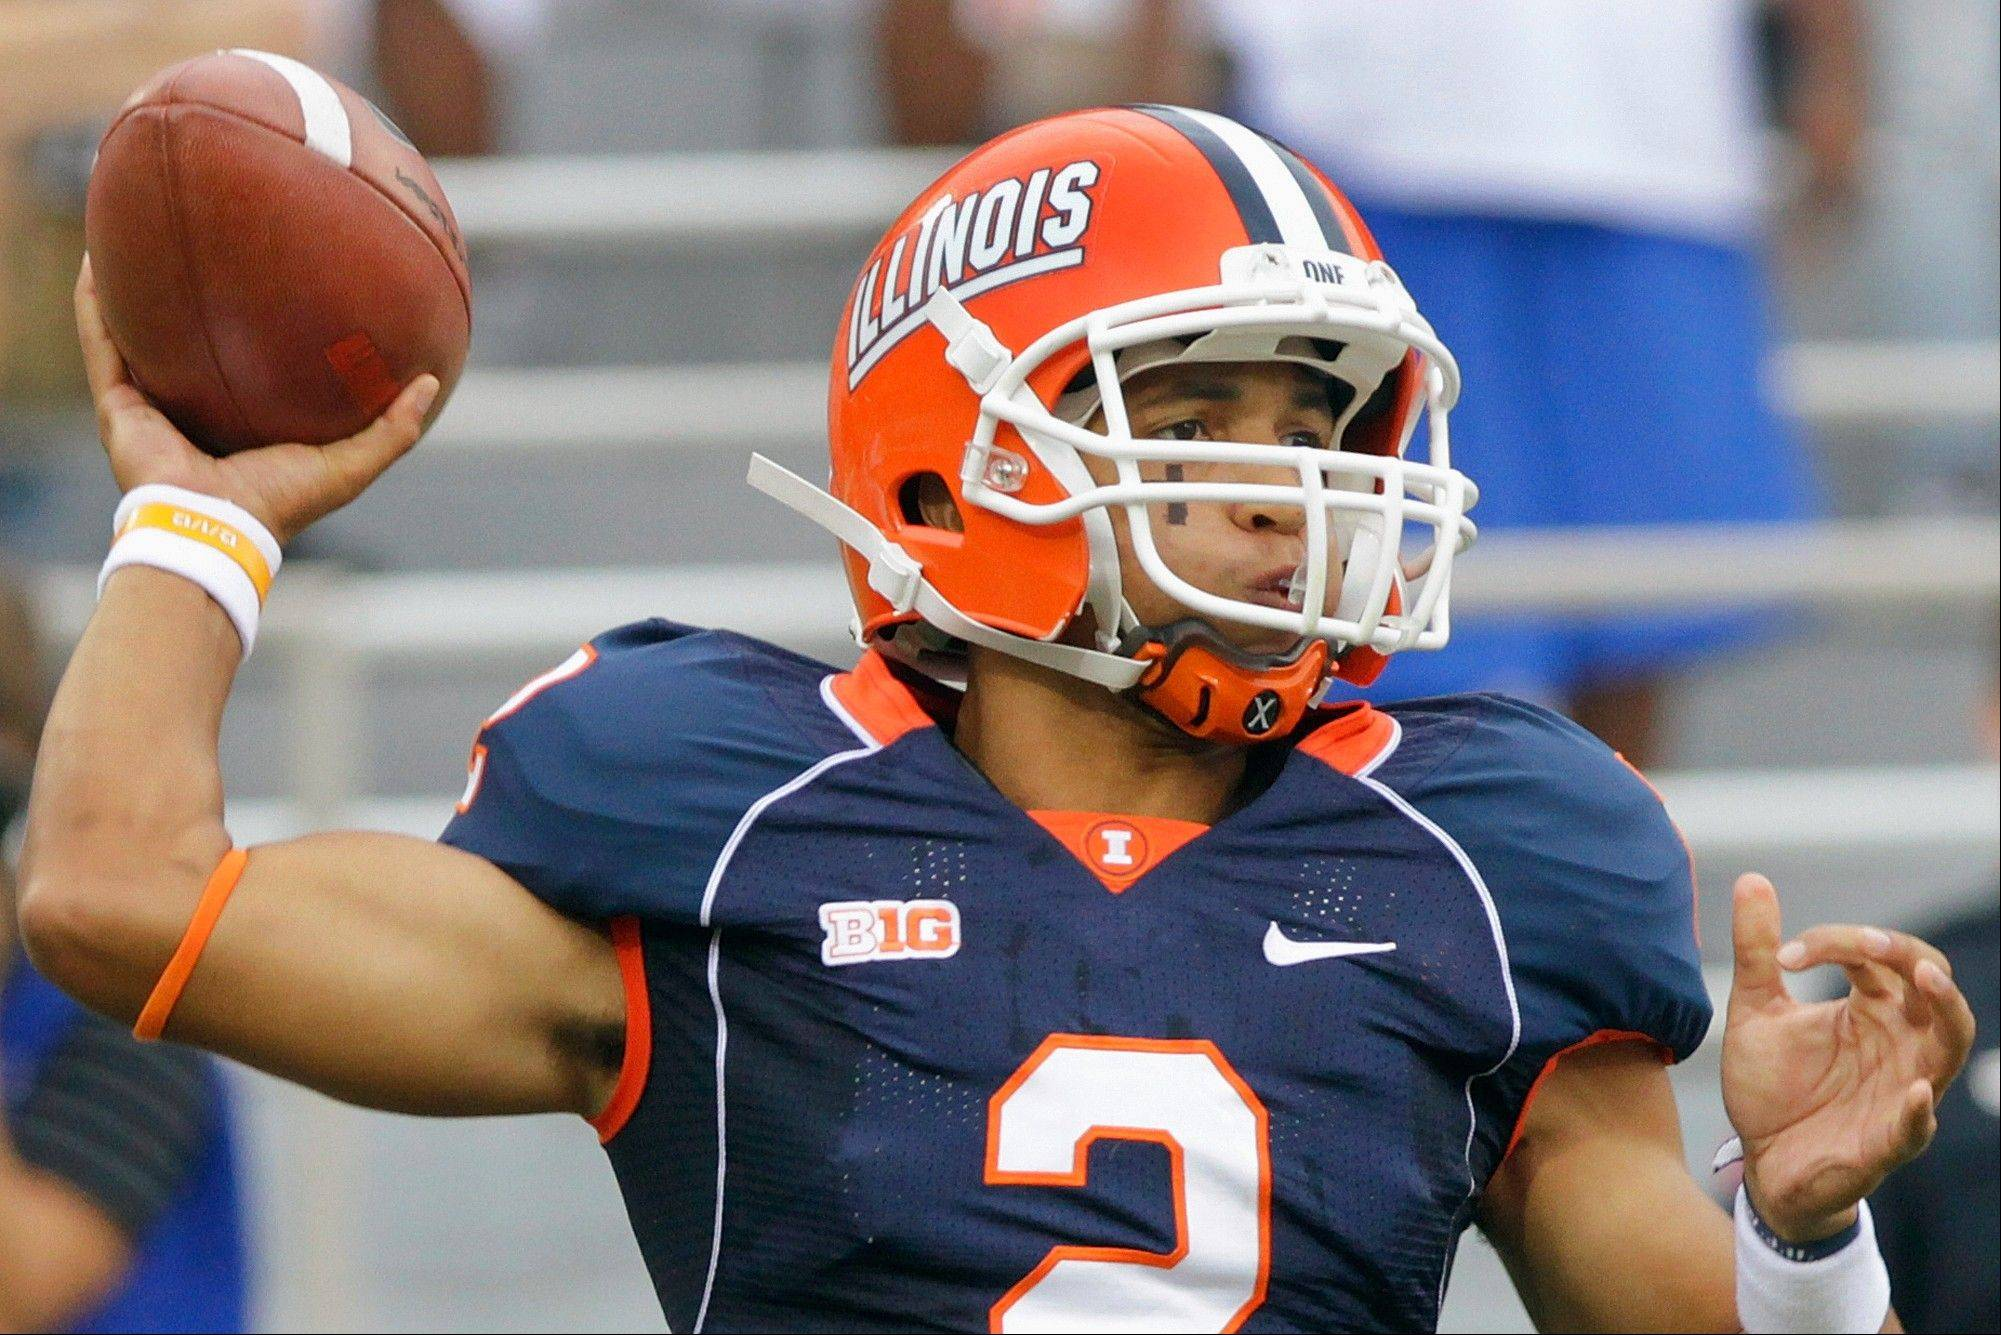 Illinois quarterback Nathan Scheelhaase passes against Western Michigan during Saturday's win in Champaign, Ill. Scheelhaase injured his ankle in the game.